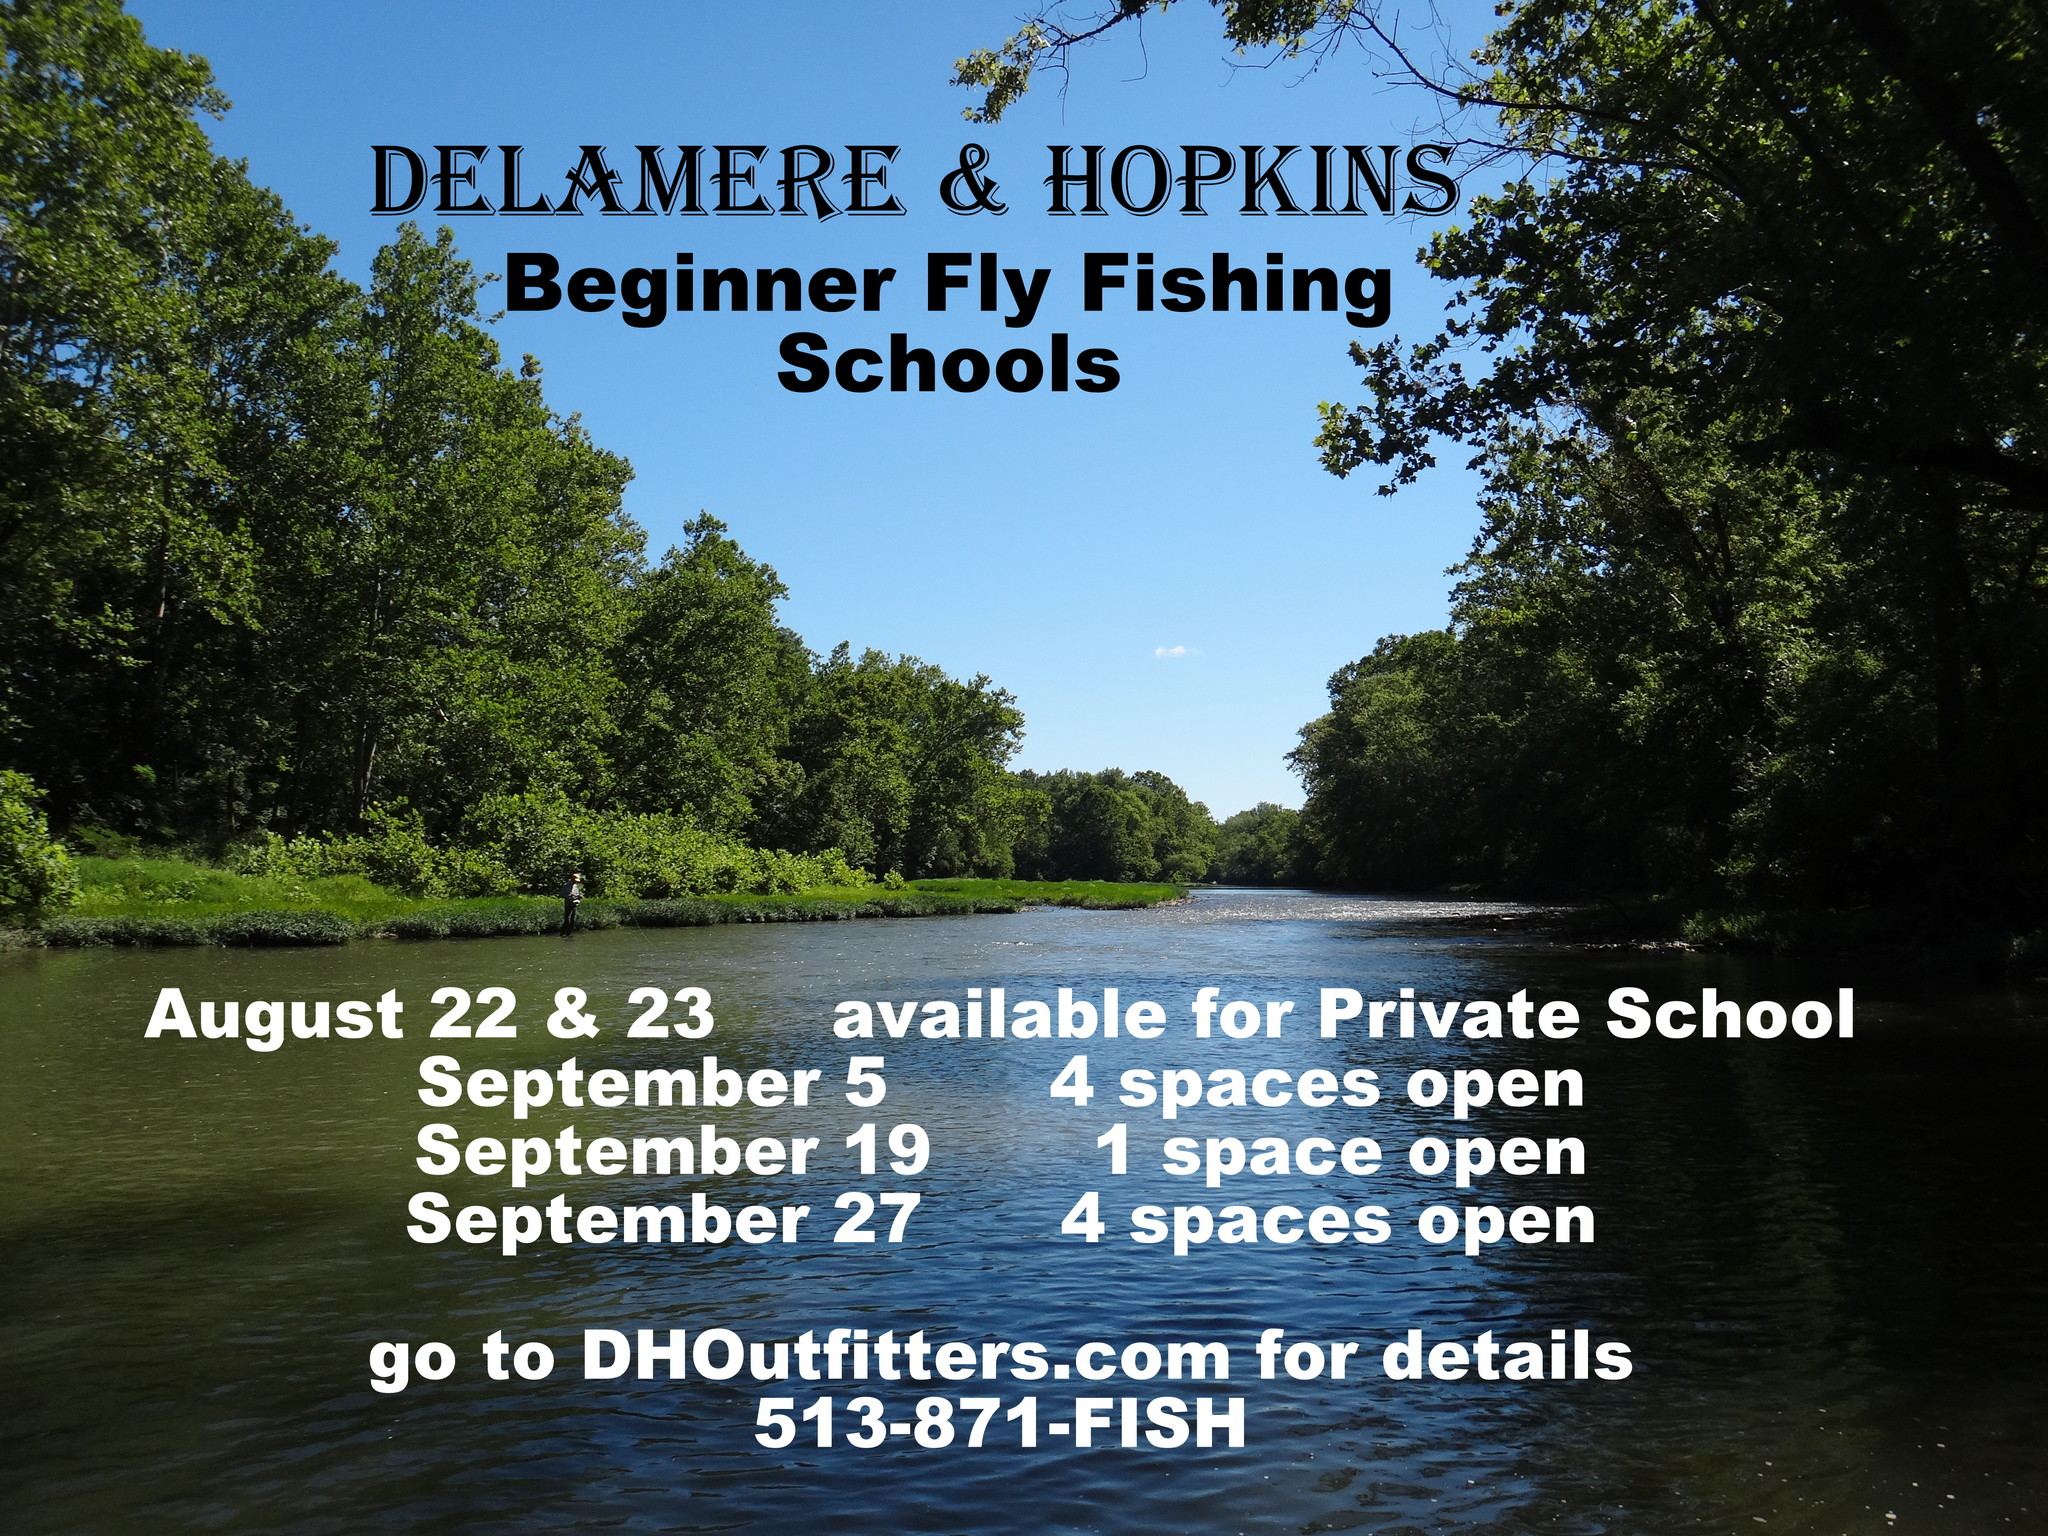 learn how to fly fish this weekend!